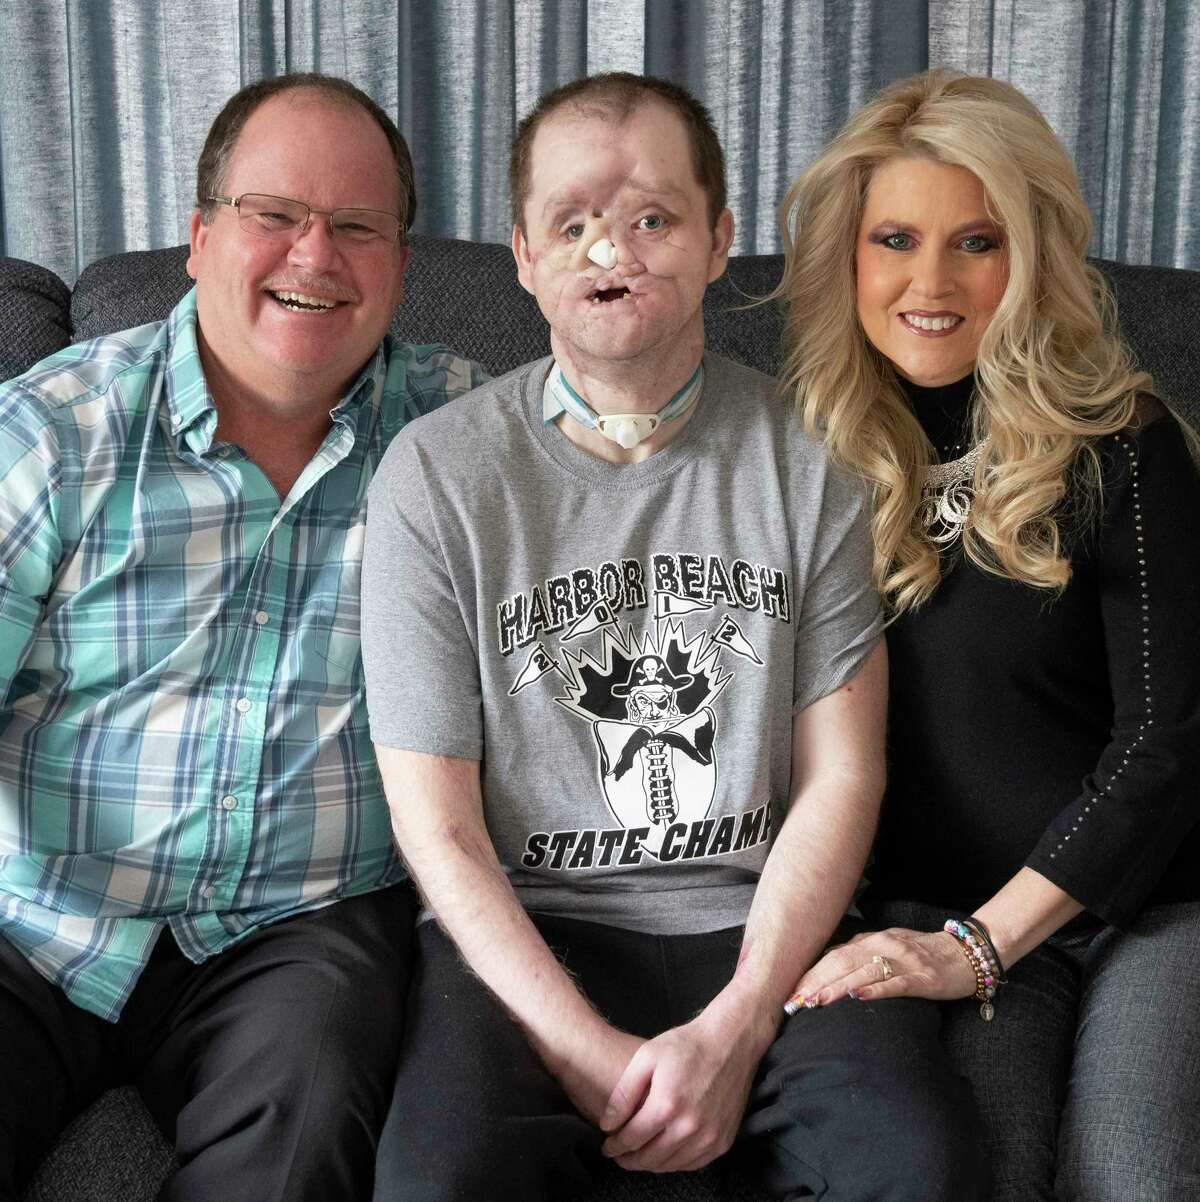 Jerry, Derek and Lisa Pfaff pose for a photo in their Harbor Beach home. The Pfaff family is working to raise $1 million to fund the cost of a face transplant operation for Derek, who was injured in 2014 he attempted to take his own life. (Pfaff Family/Courtesy Photo)